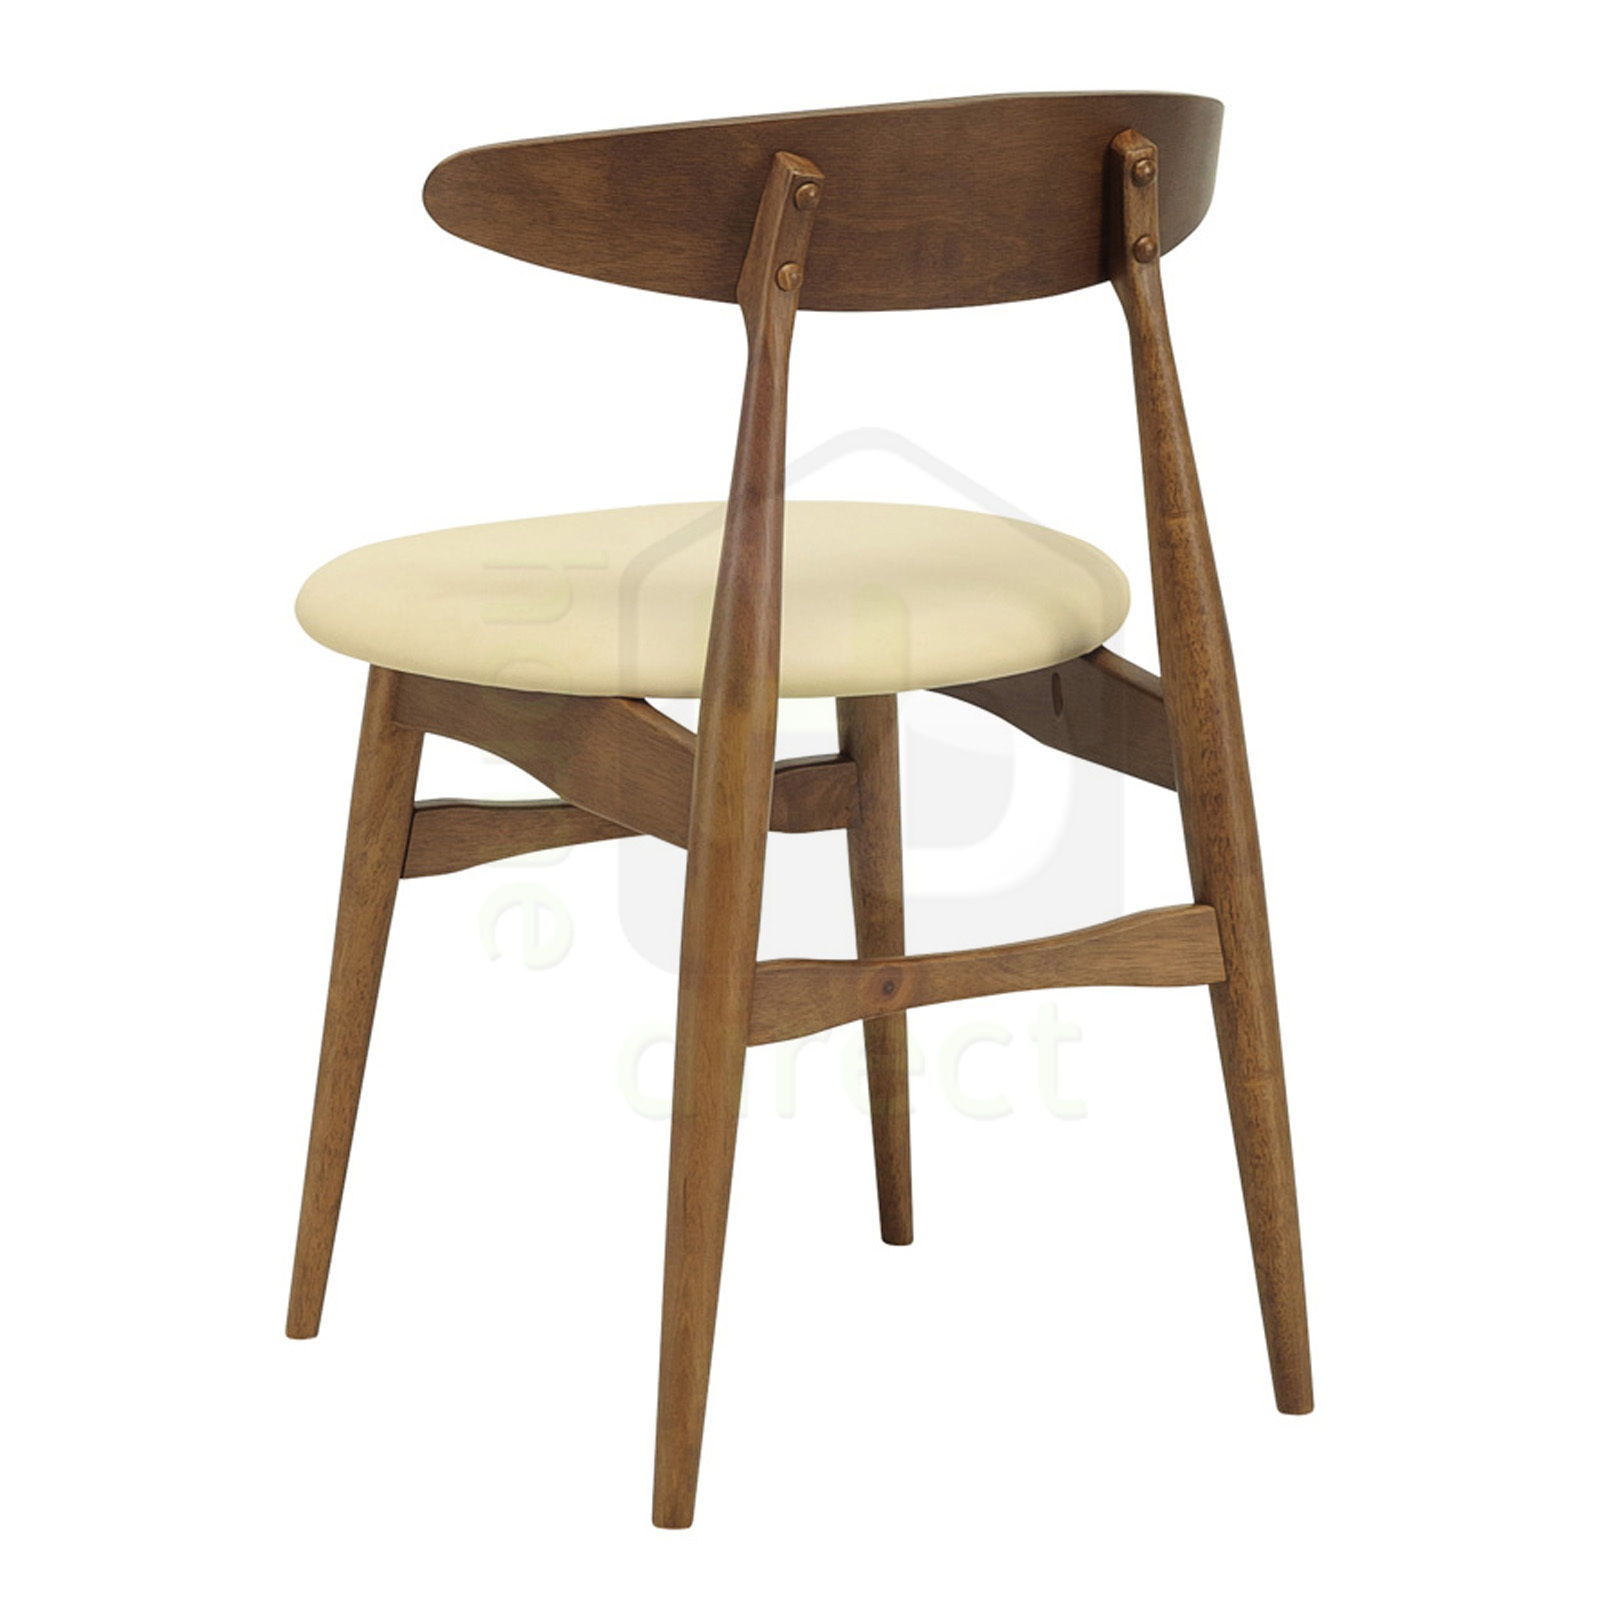 Www Modern Furniture: 2x TELYN Scandinavian Retro Modern Wooden Dining Chair